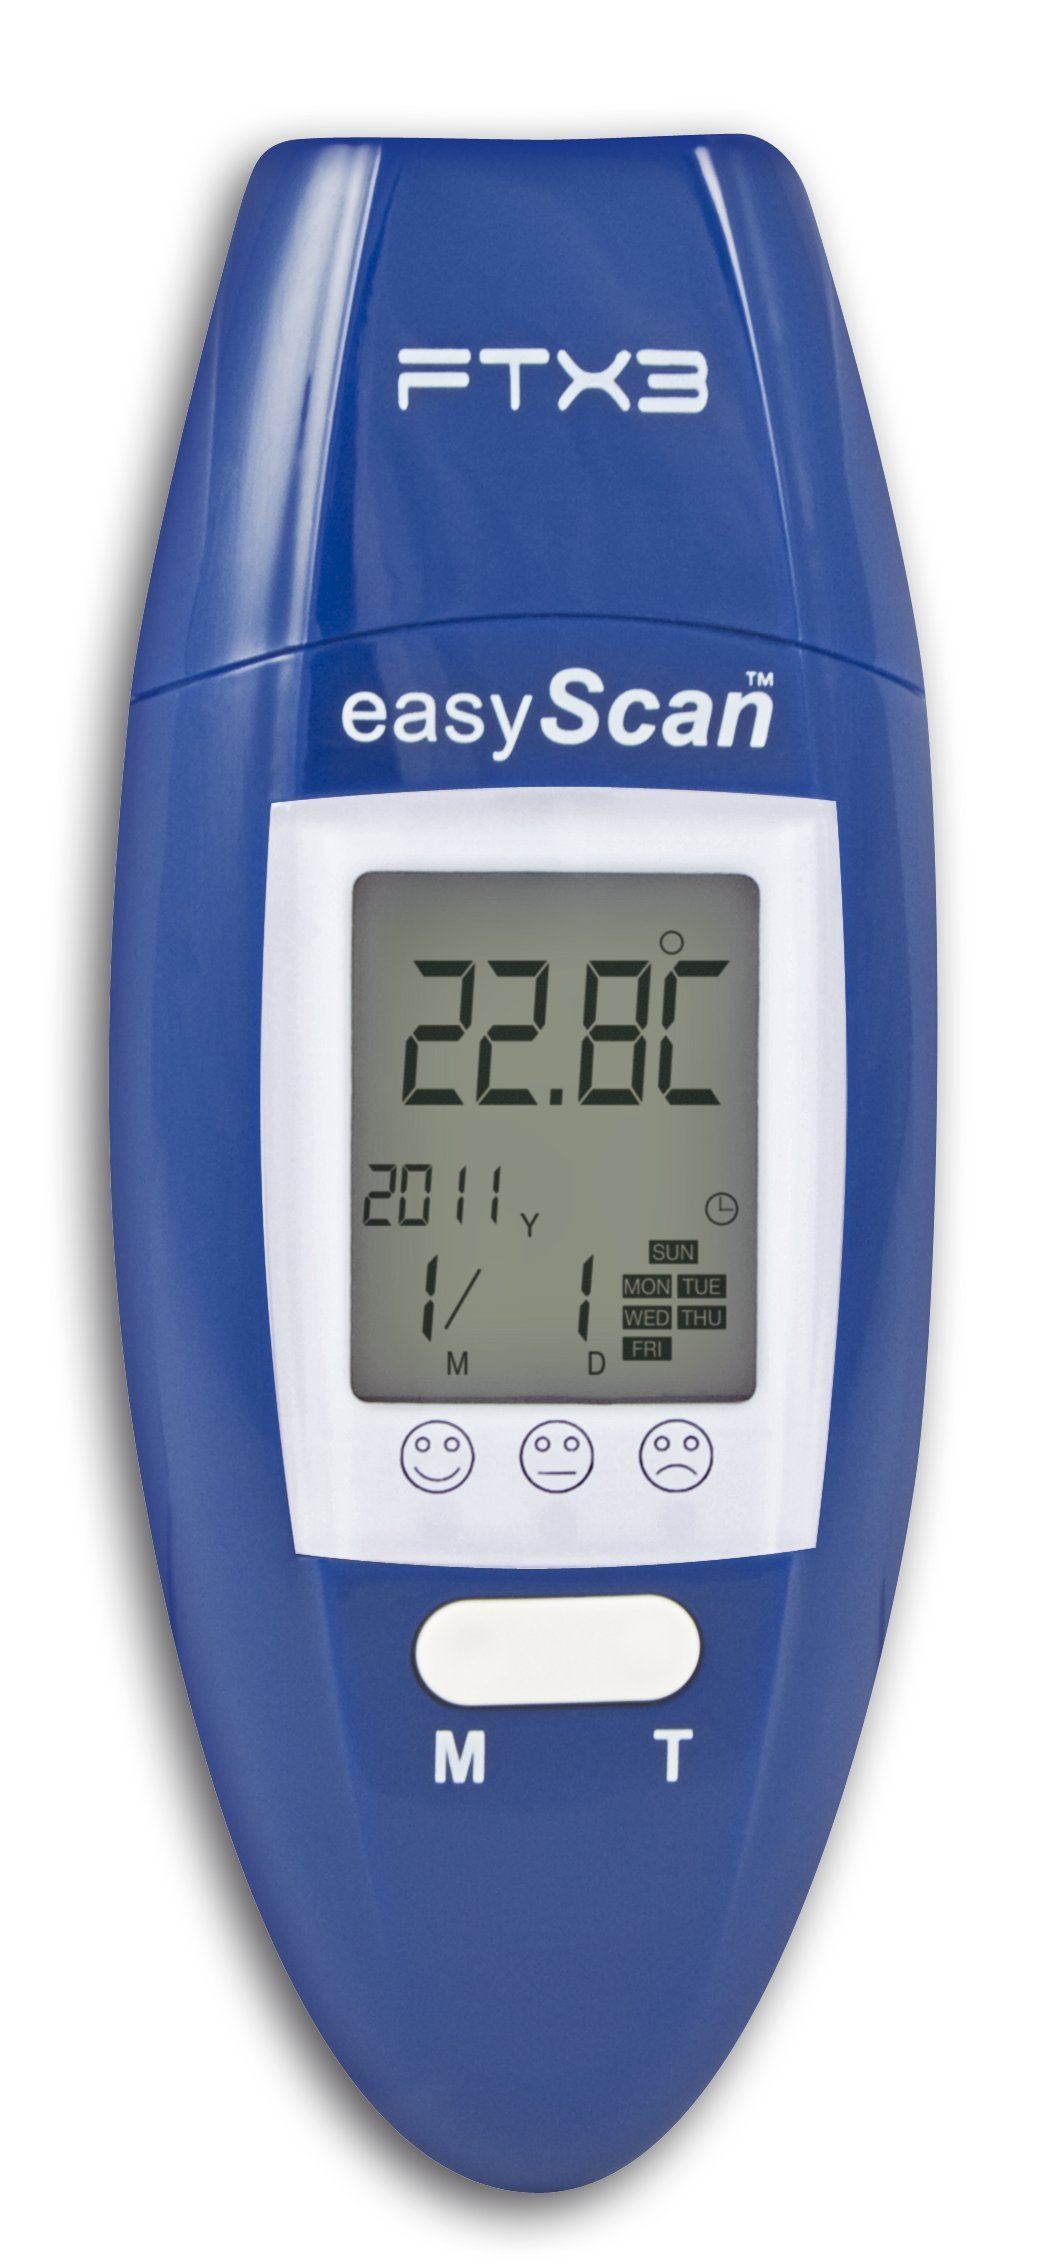 Visiomed Easyscan Ear and Forehead Thermometer 6-in-1 Ftx3 (Blue)